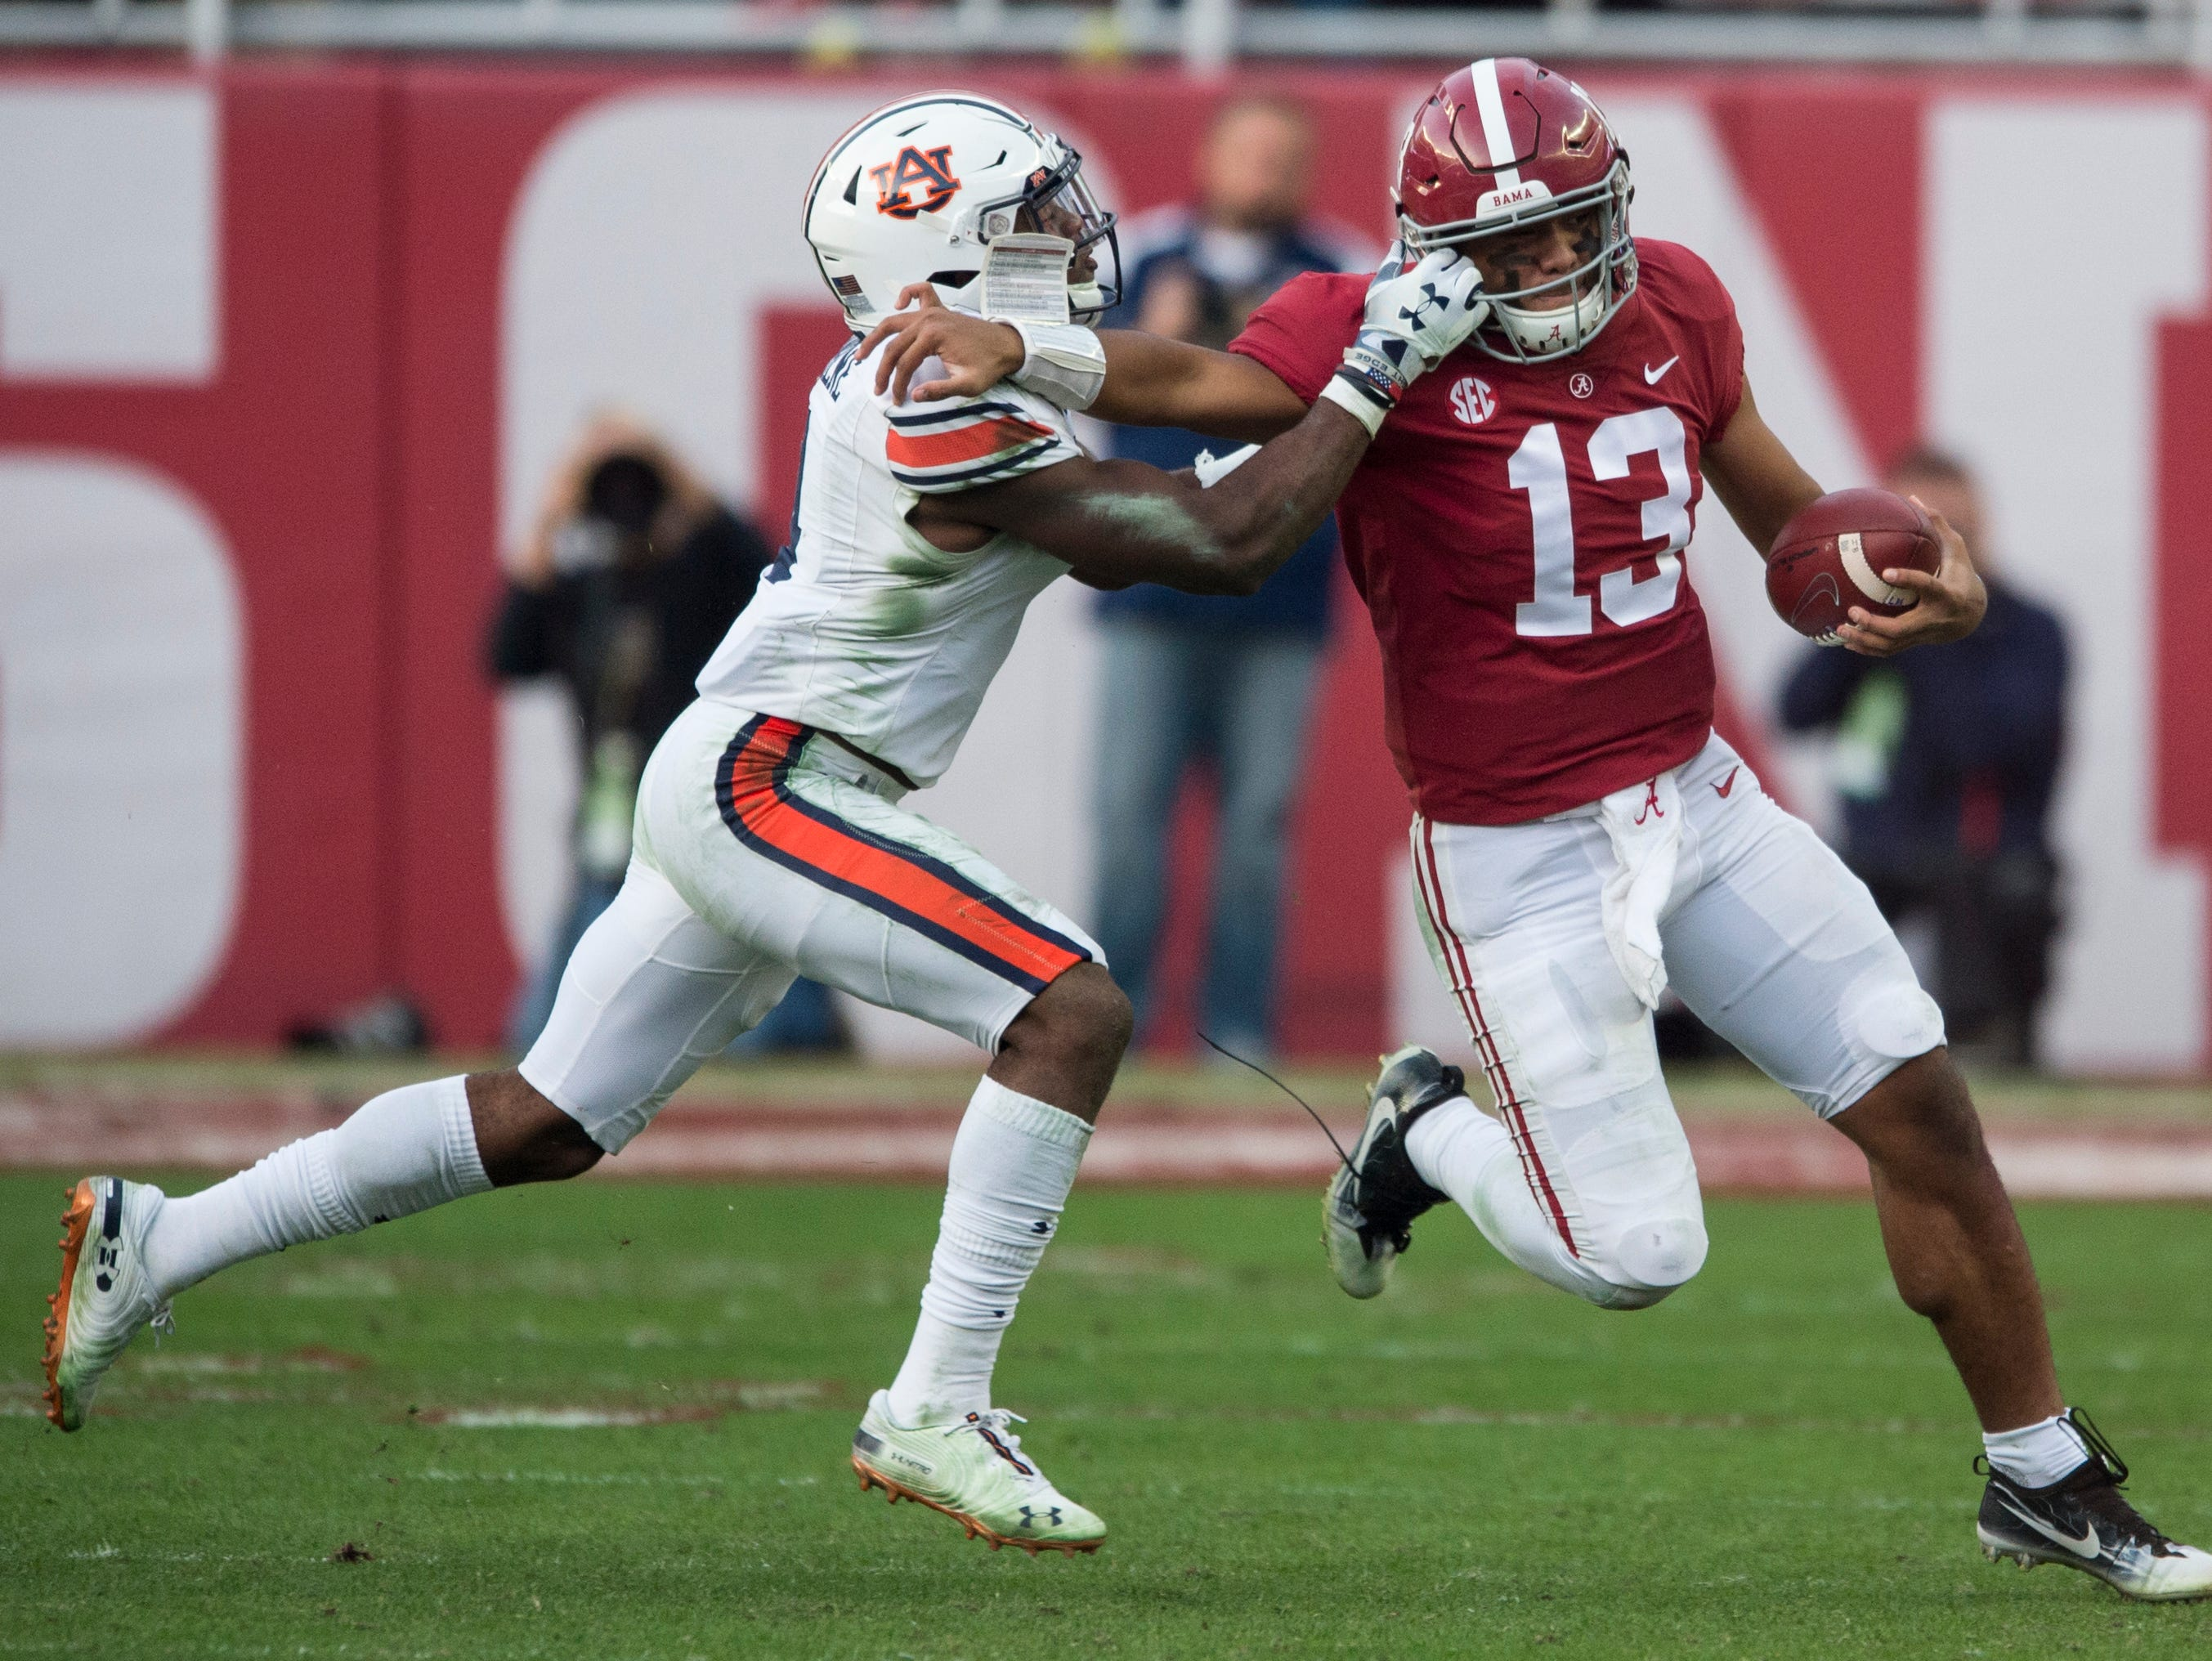 Alabama quarterback Tua Tagovailoa (13) is tackled by Auburn defensive back Noah Igbinoghene (4) during the Iron Bowl at Bryant-Denny Stadium in Tuscaloosa, Ala., on Saturday, Nov. 24, 2018. Alabama leads Auburn 17-14 at halftime. No face mask penalty was called on the play.